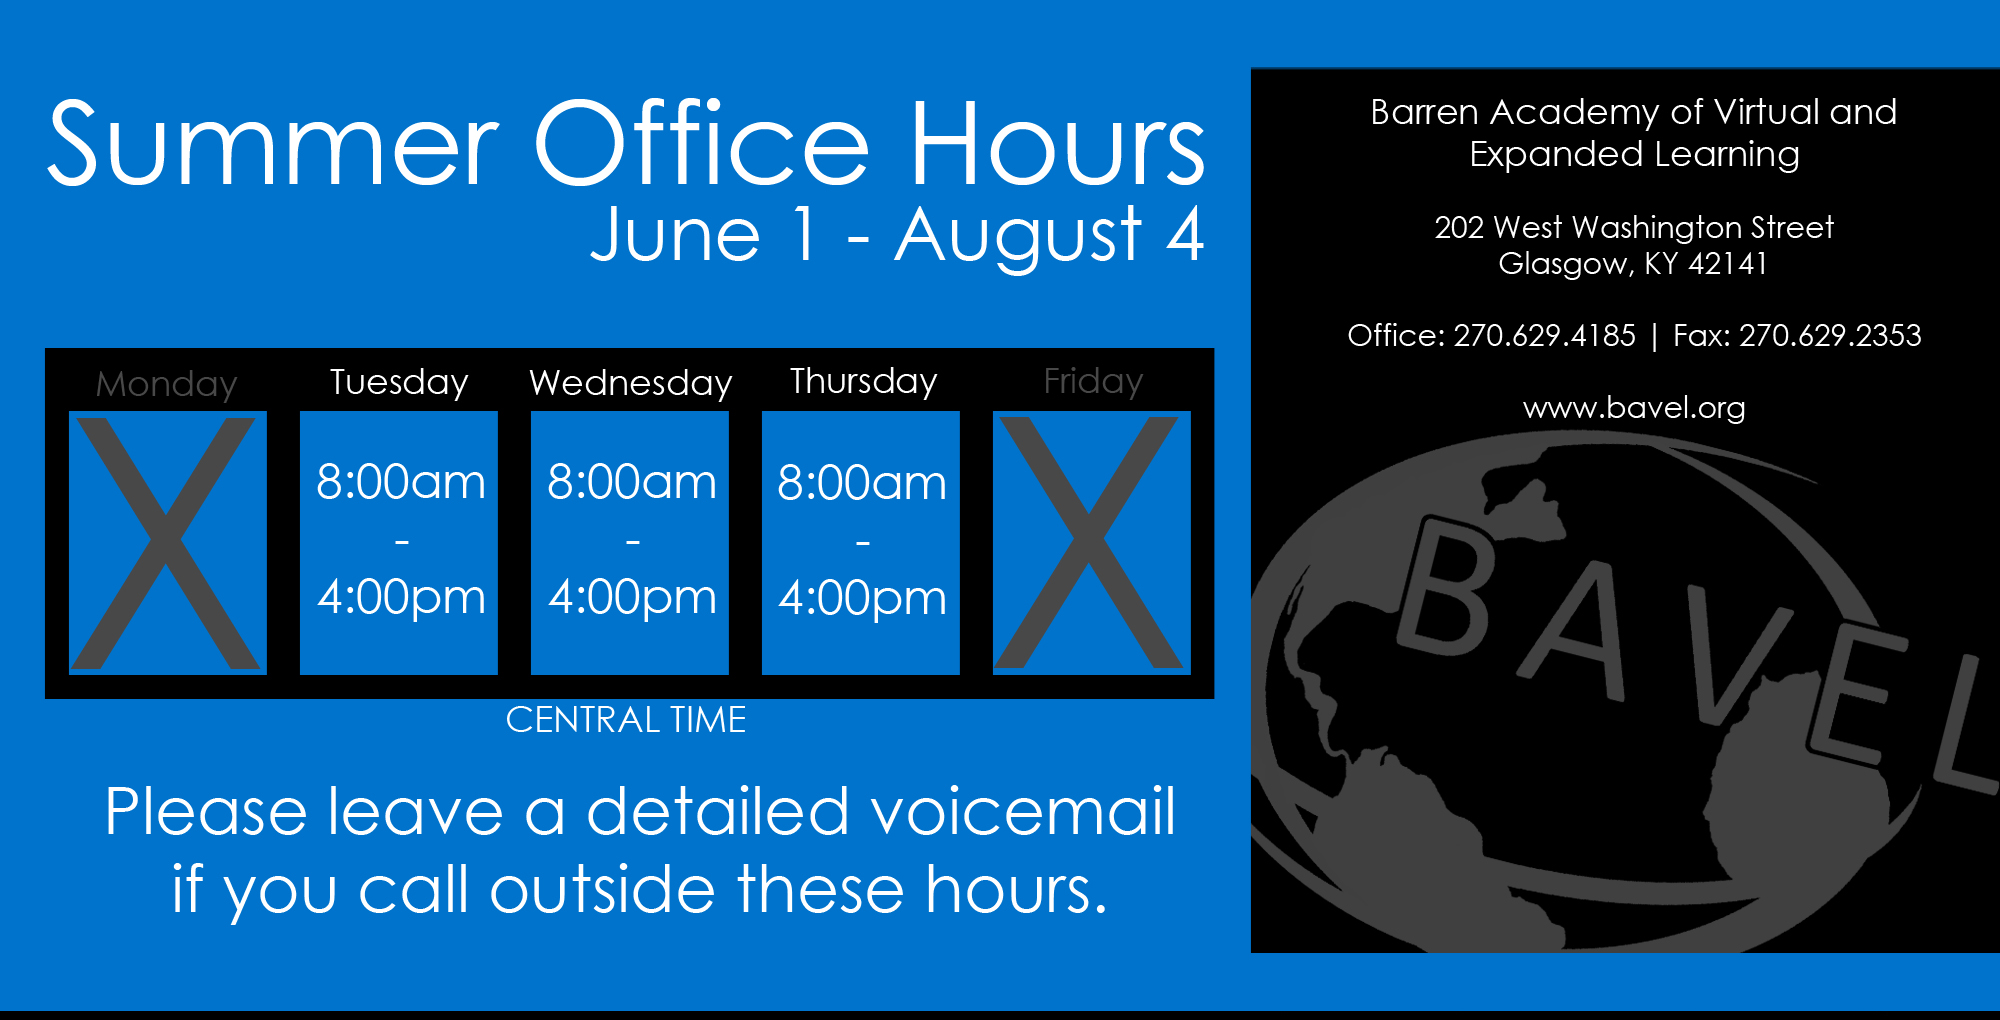 Summer Office Hours - Tuesday, Wednesday, Thursday - 8:00am-4:00pm